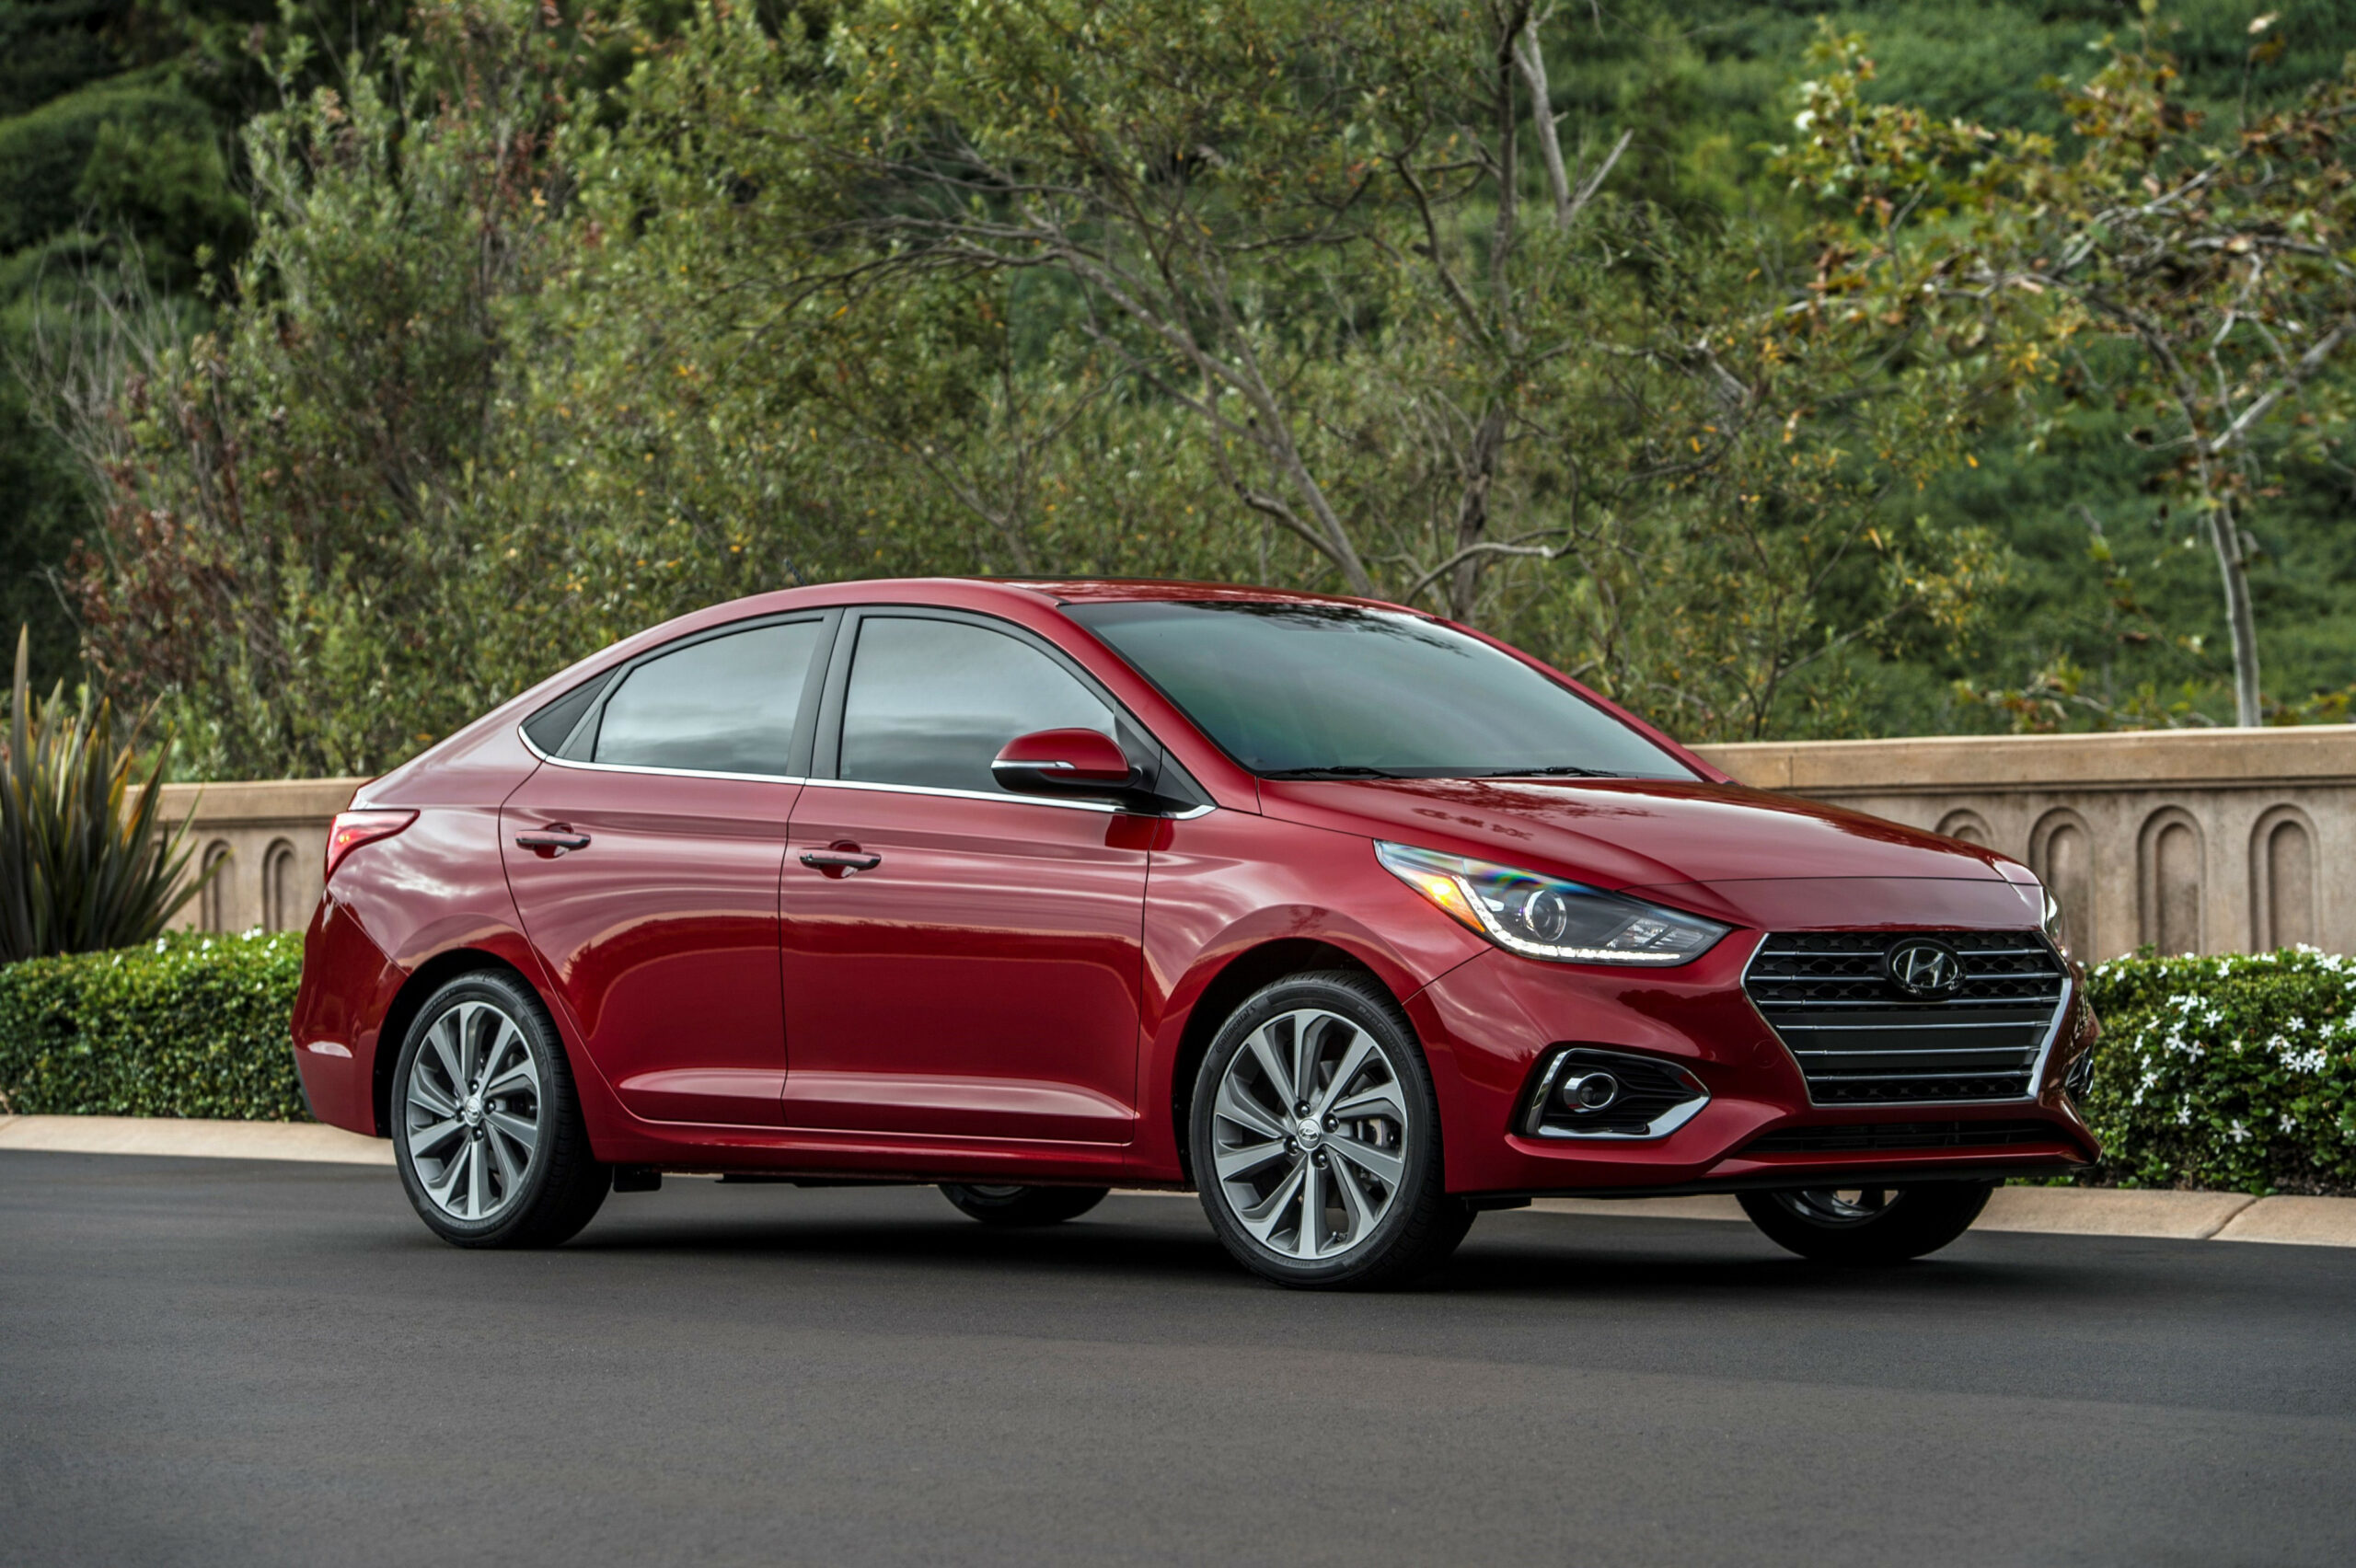 10 Hyundai Accent Review, Pricing, and Specs - hyundai hatchback accent 2020